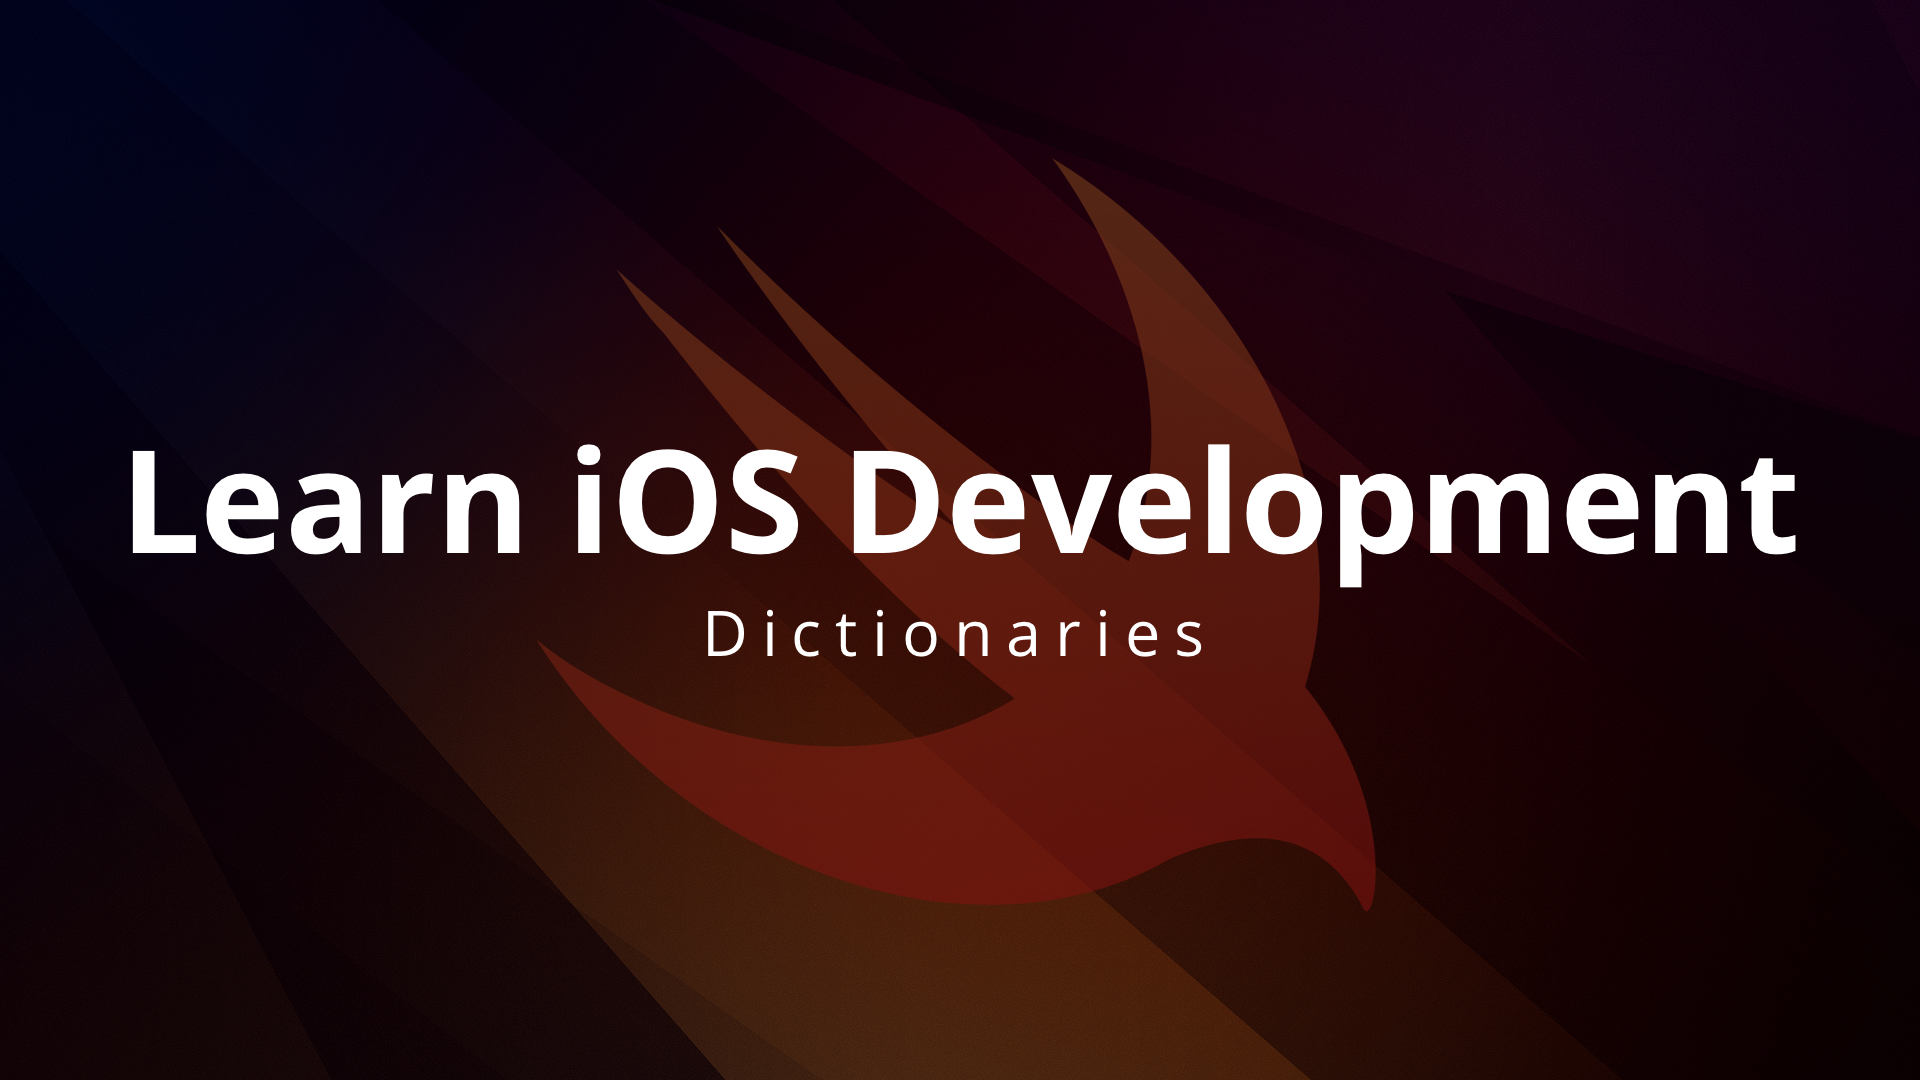 Learning Swift and iOS Development Part 7: Dictionaries